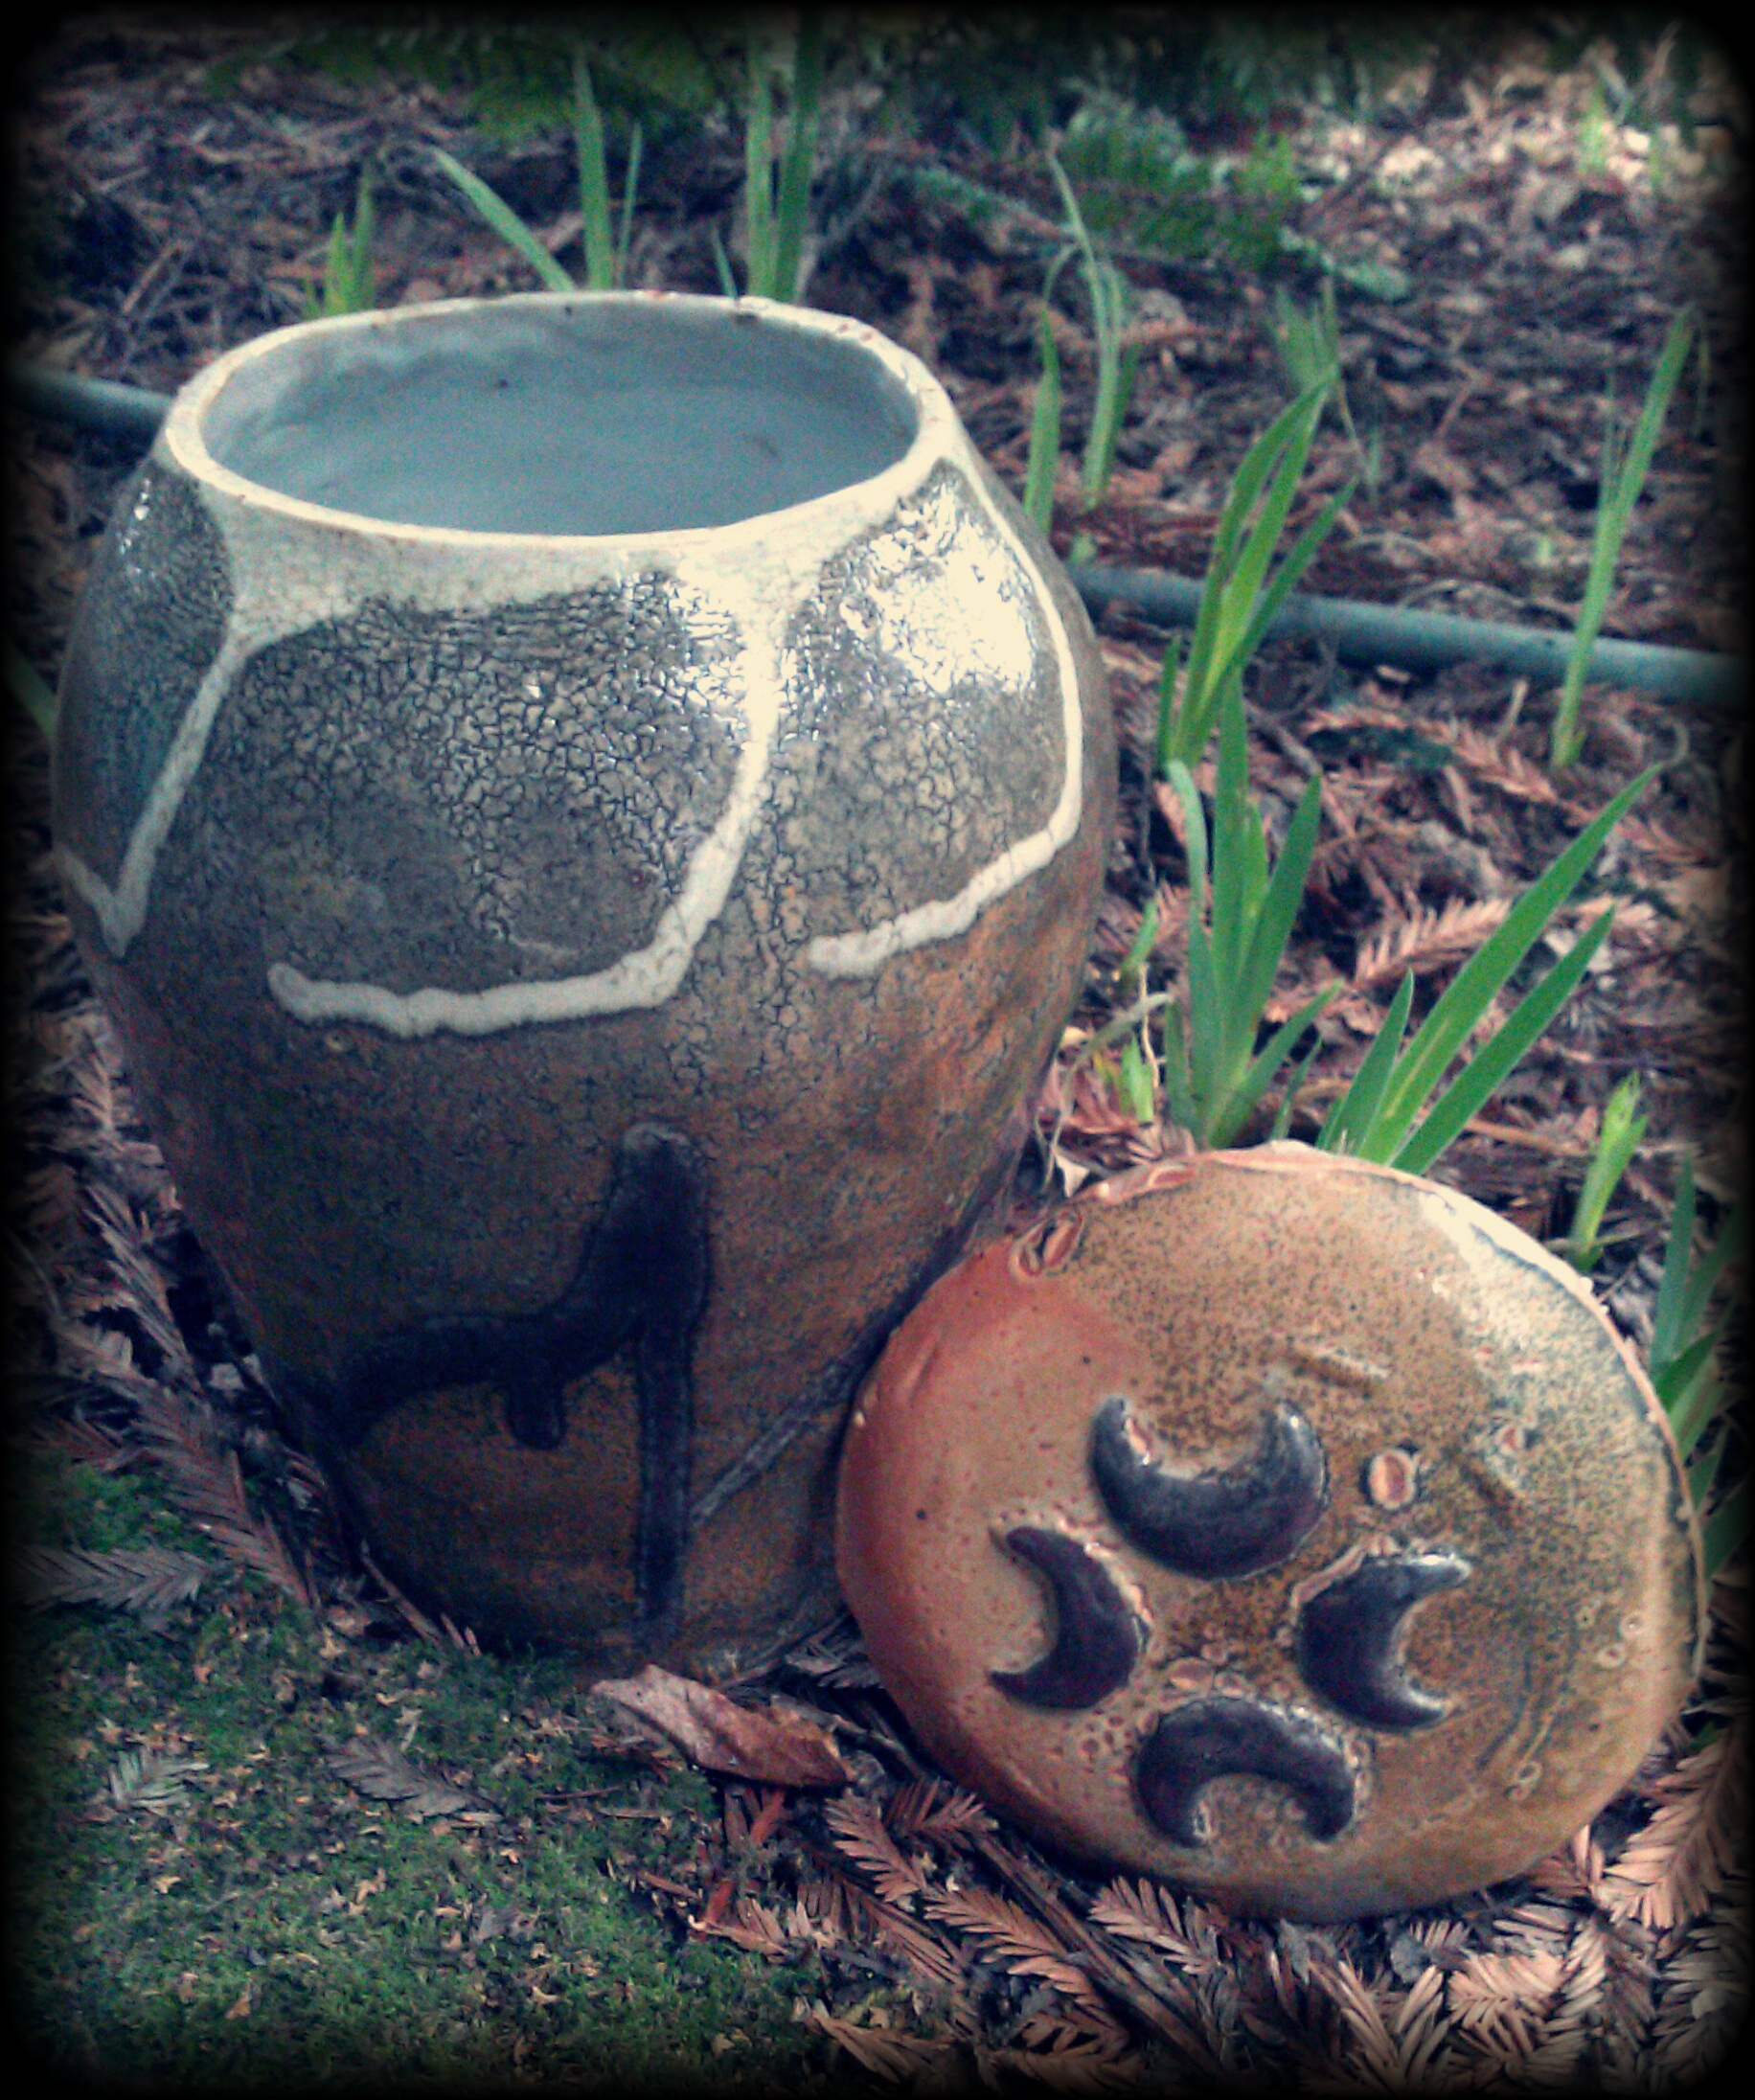 earthen hand conscious awearness etsy shop